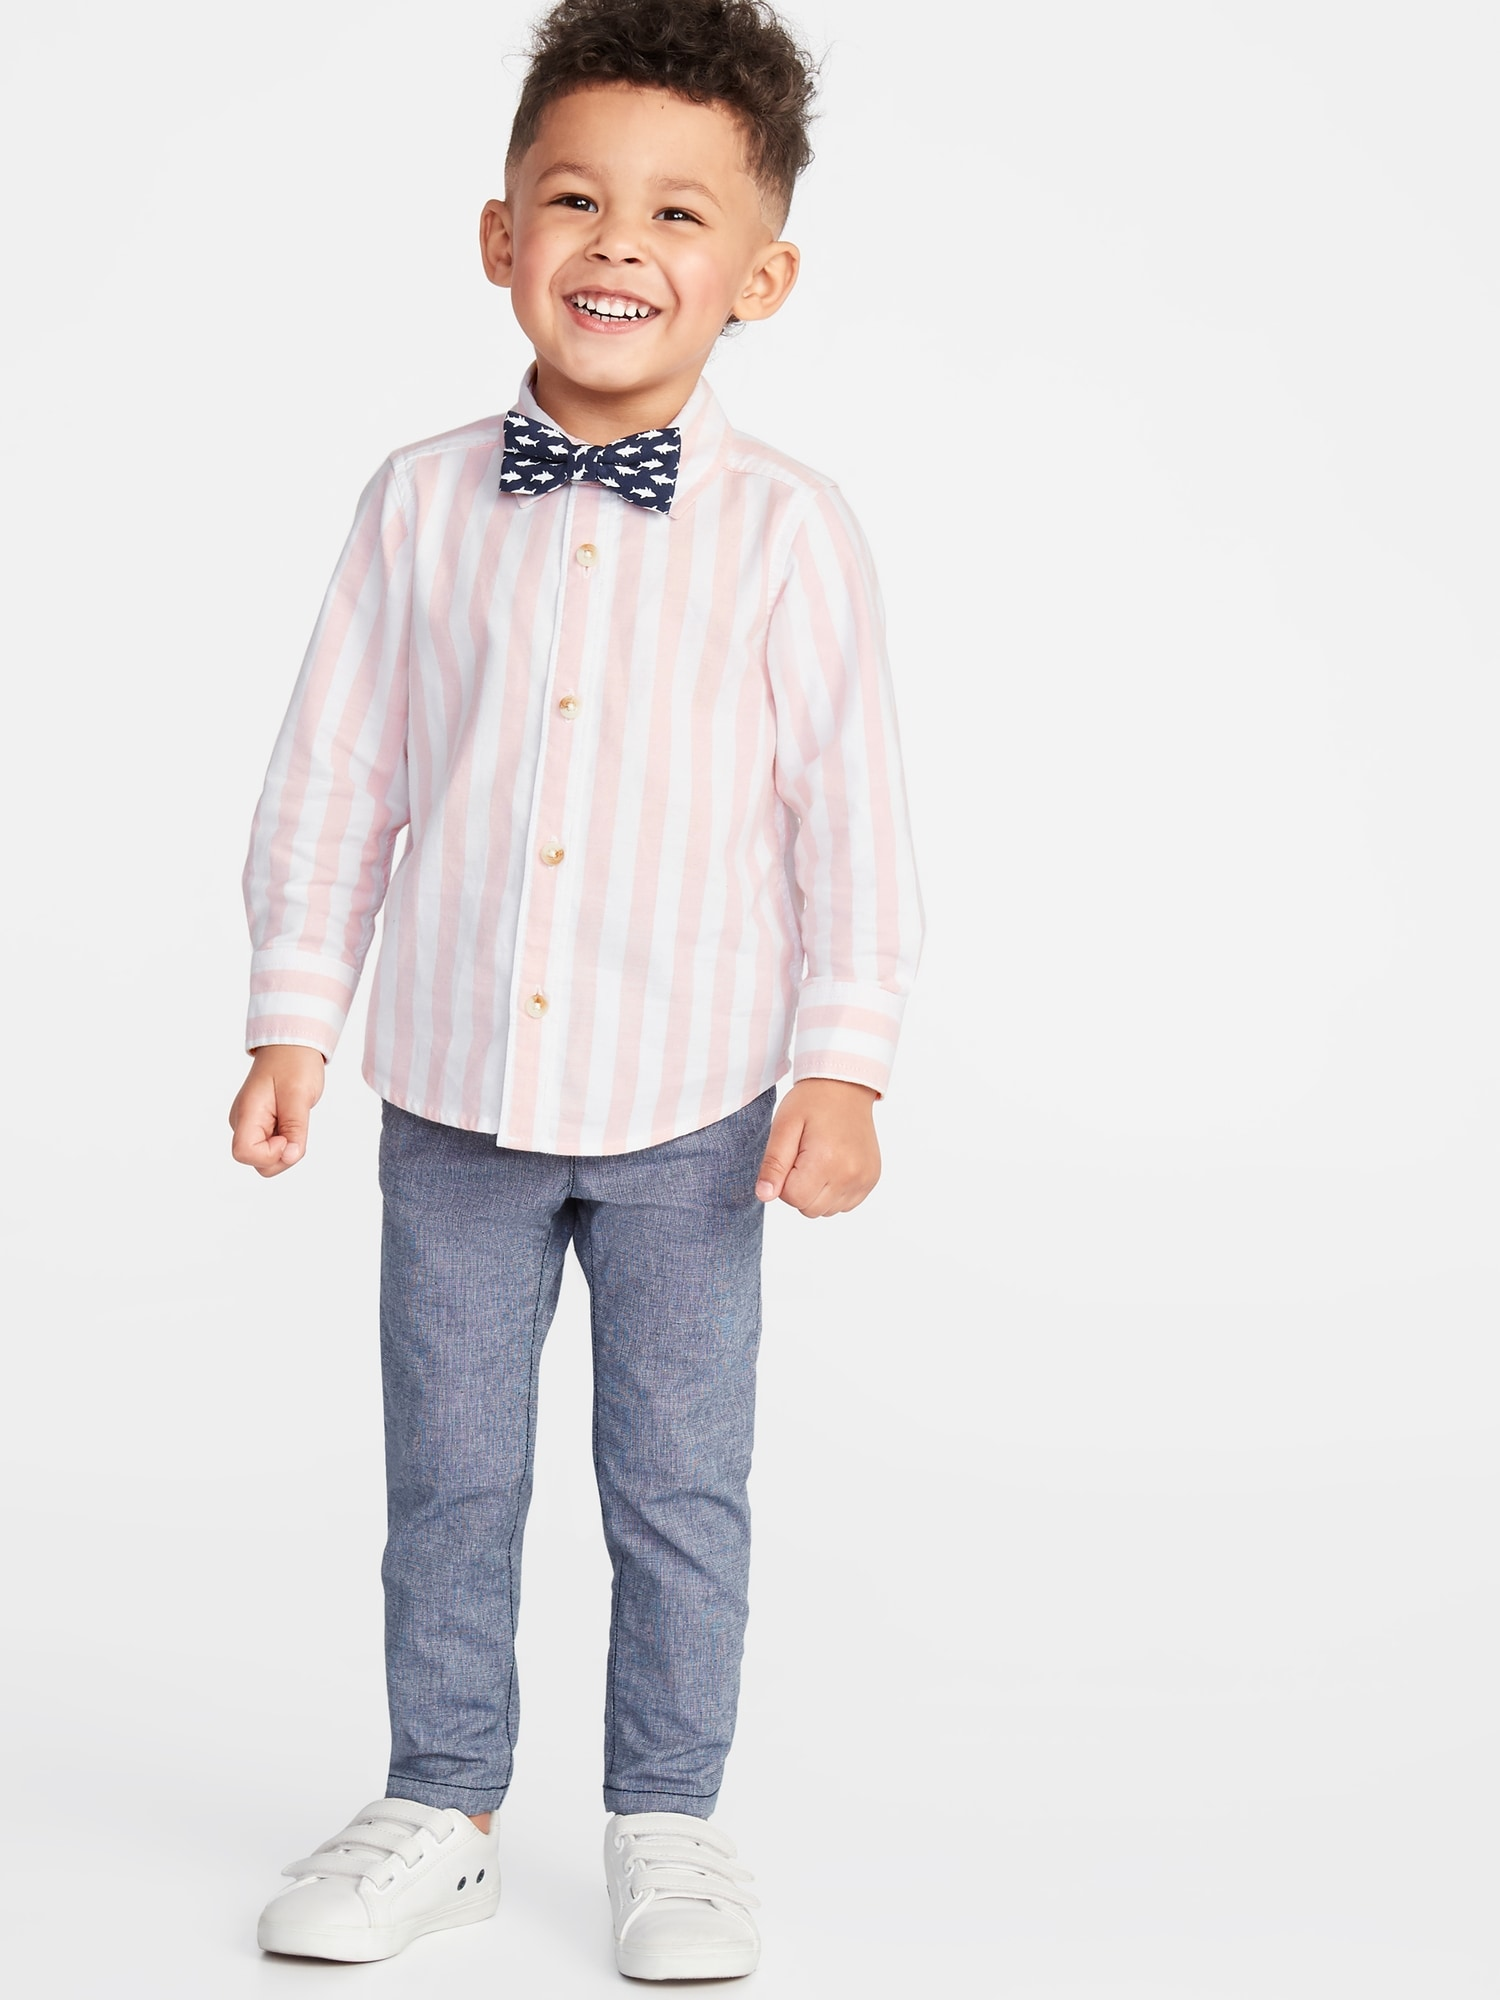 f004e7156996 Long-Sleeve Shirt & Printed Bow-Tie Set for Toddler Boys | Old Navy